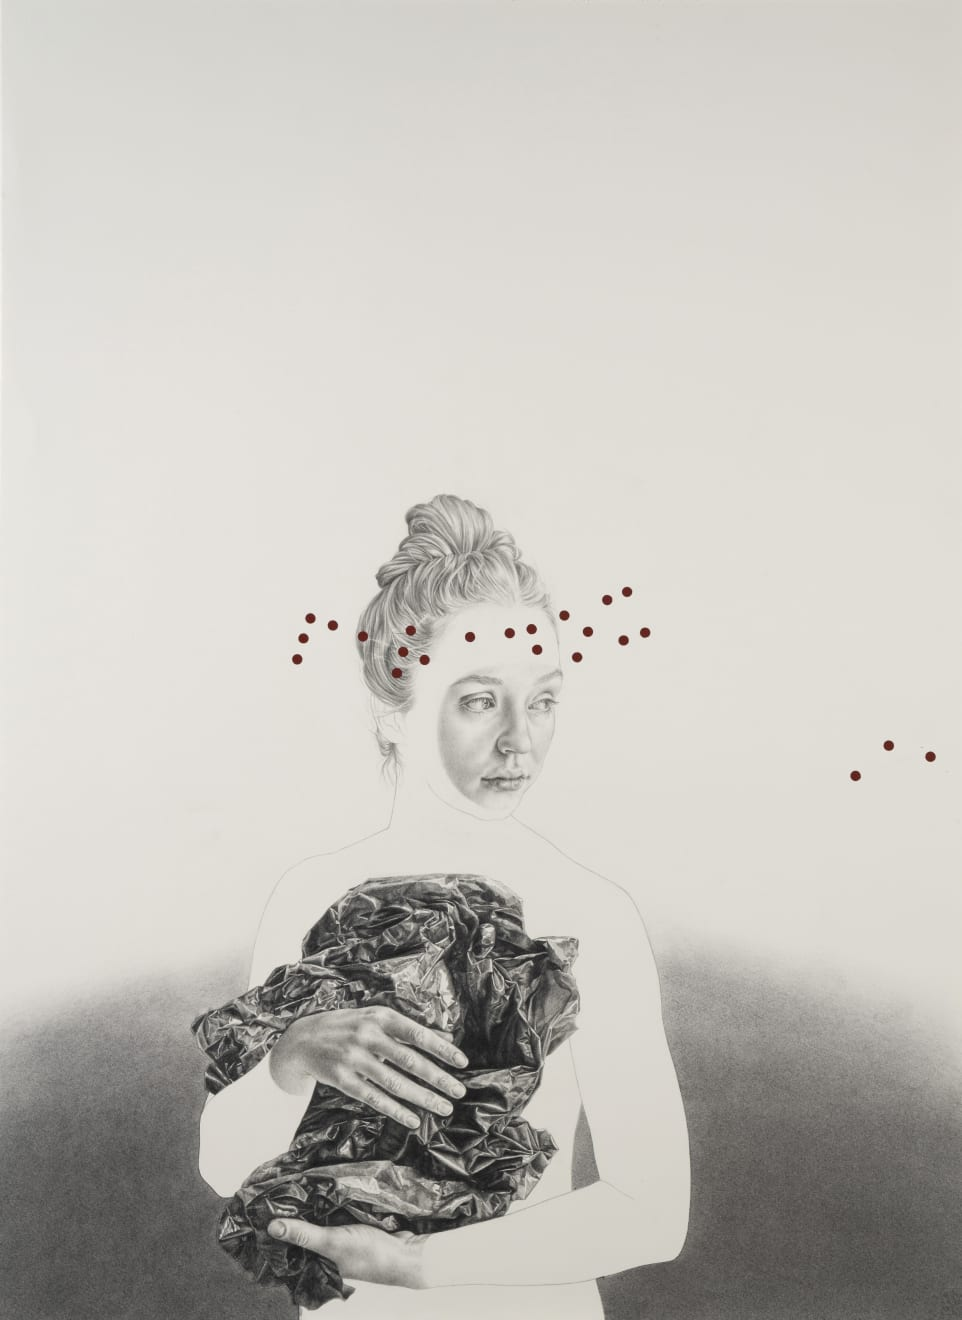 Information paradox, Pencil, acrylic and charcoal on deckle edge Saunders waterford paper, 56cm x 76cm